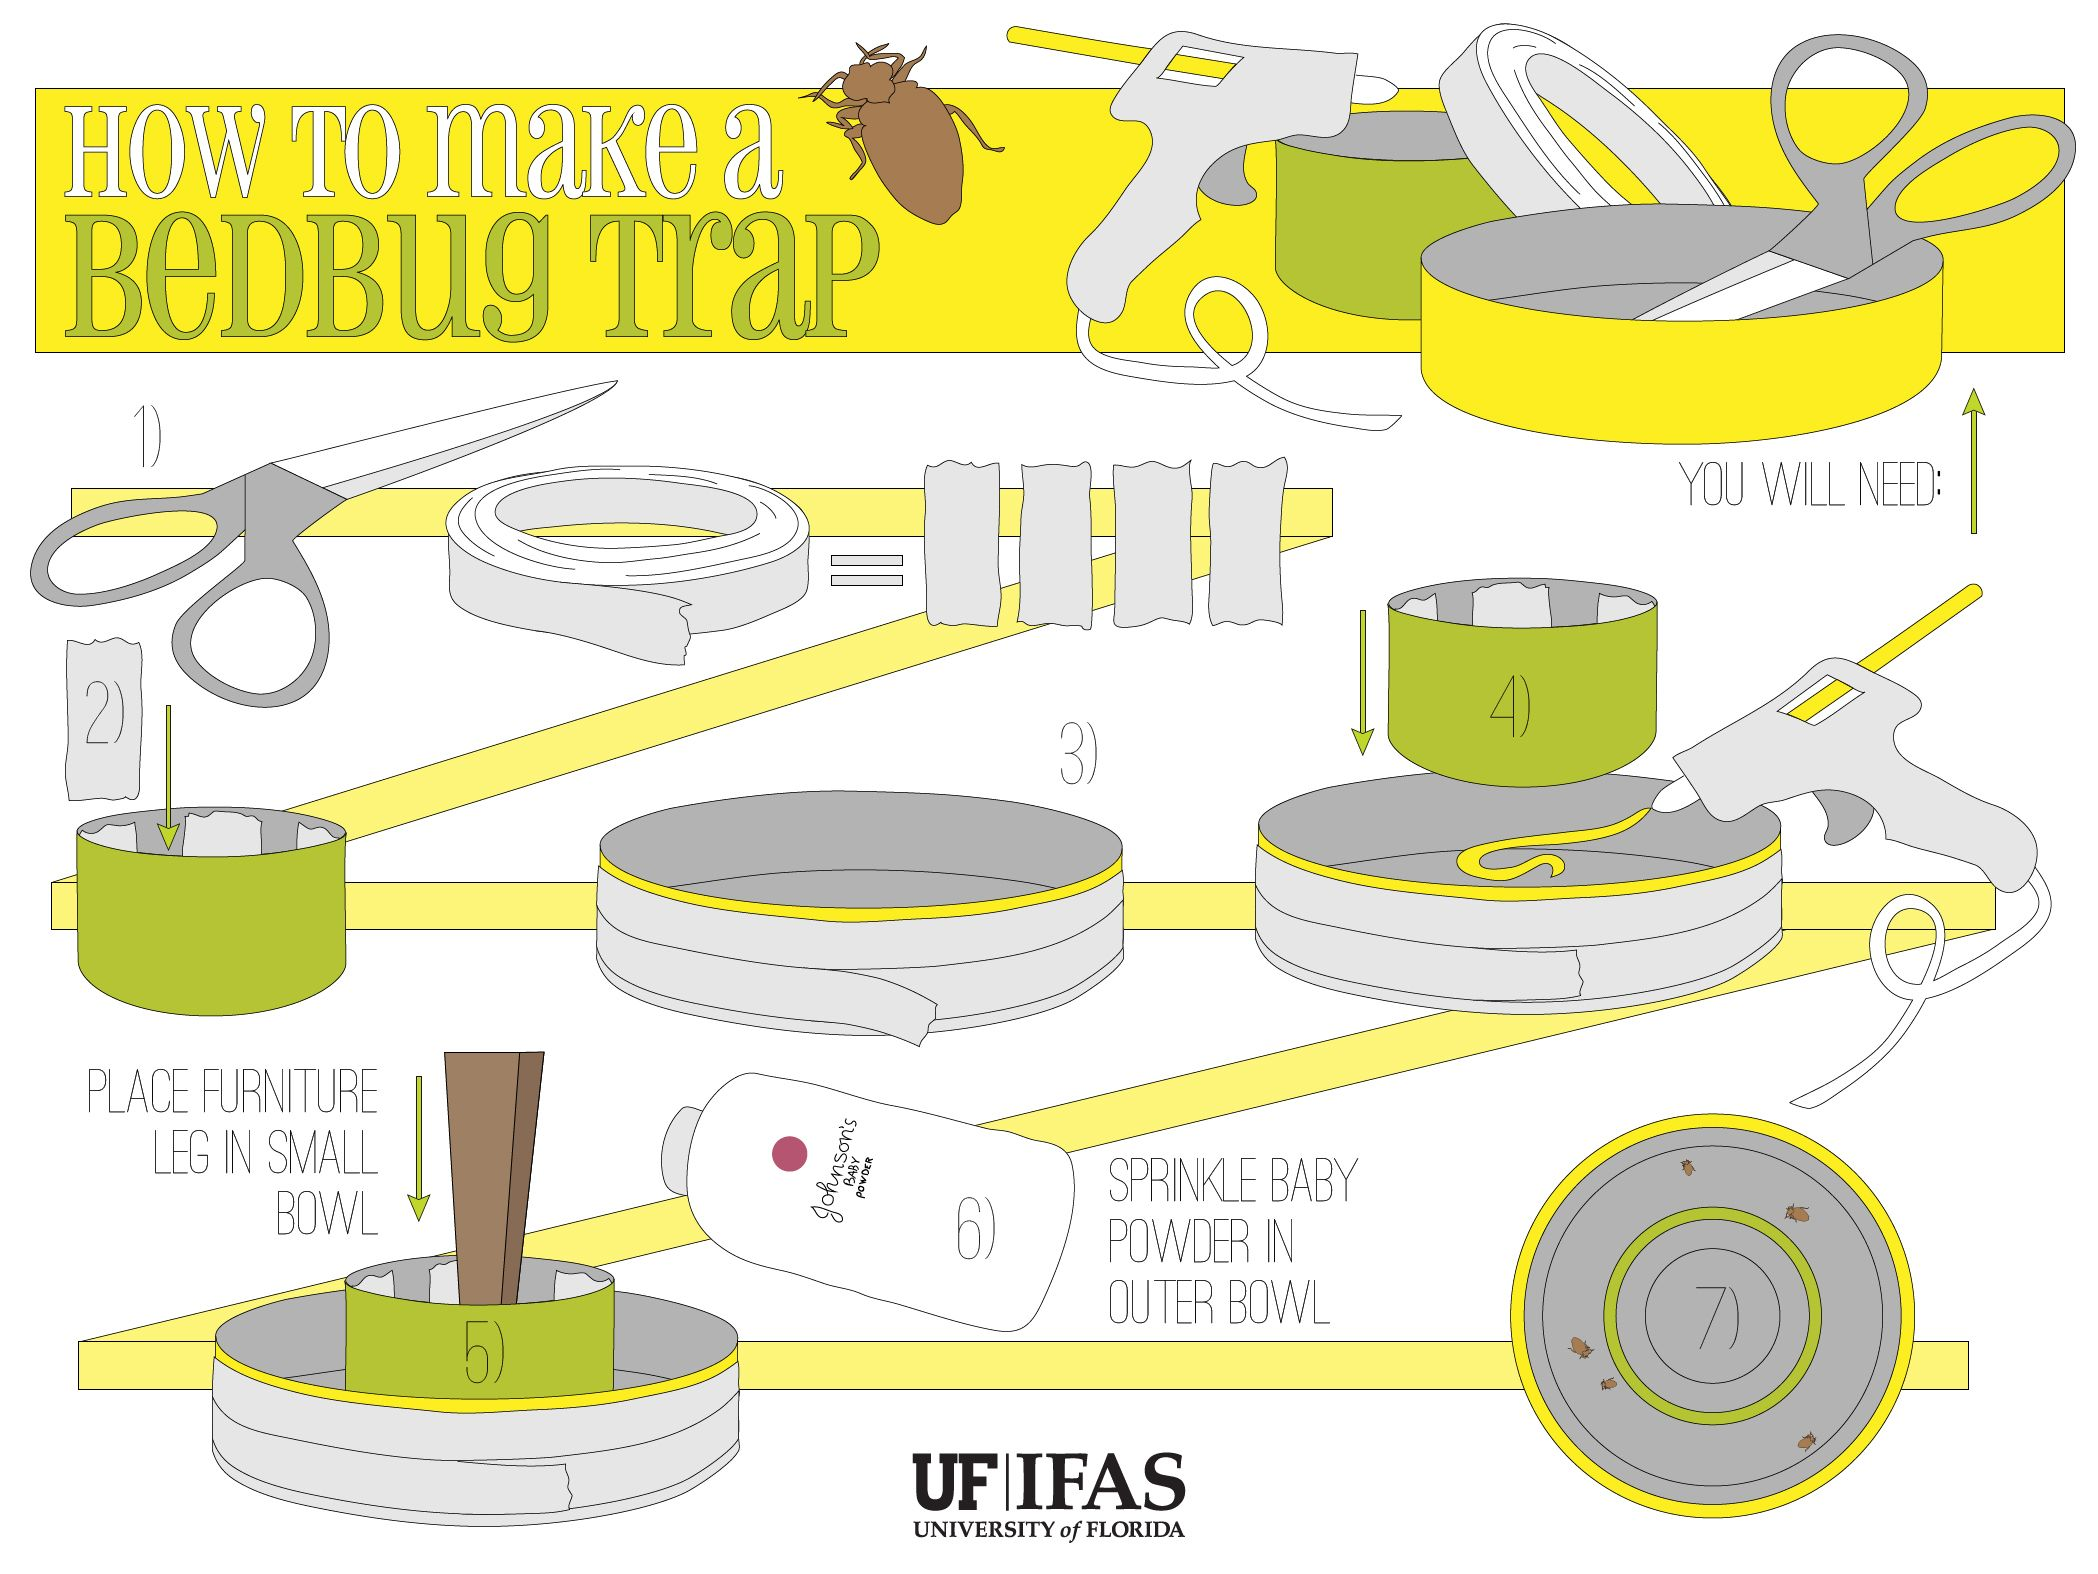 Get rid of bedbugs with this 1 diy kit thanks to ufbugs